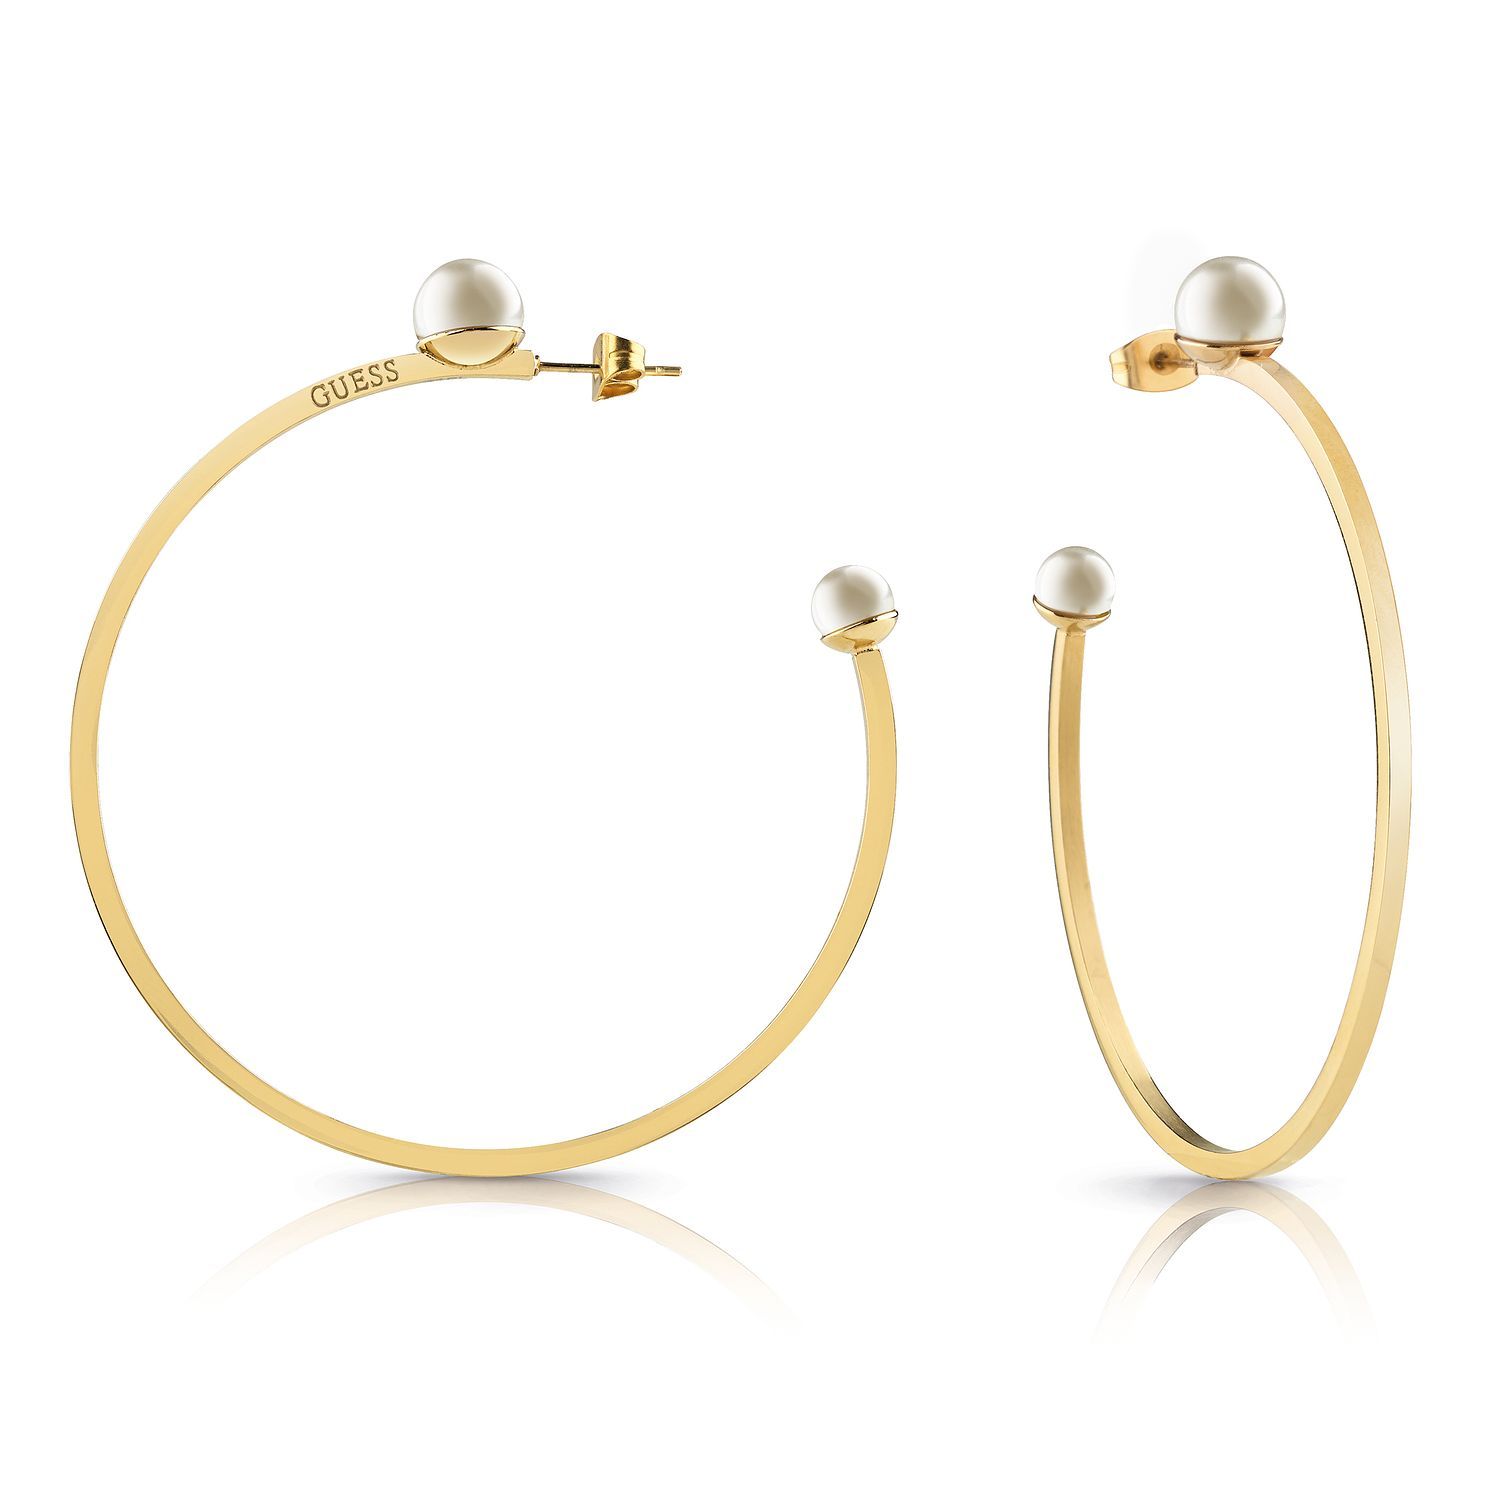 Guess Yellow Gold Tone Faux Pearl Hoop Earrings - Product number 4103475